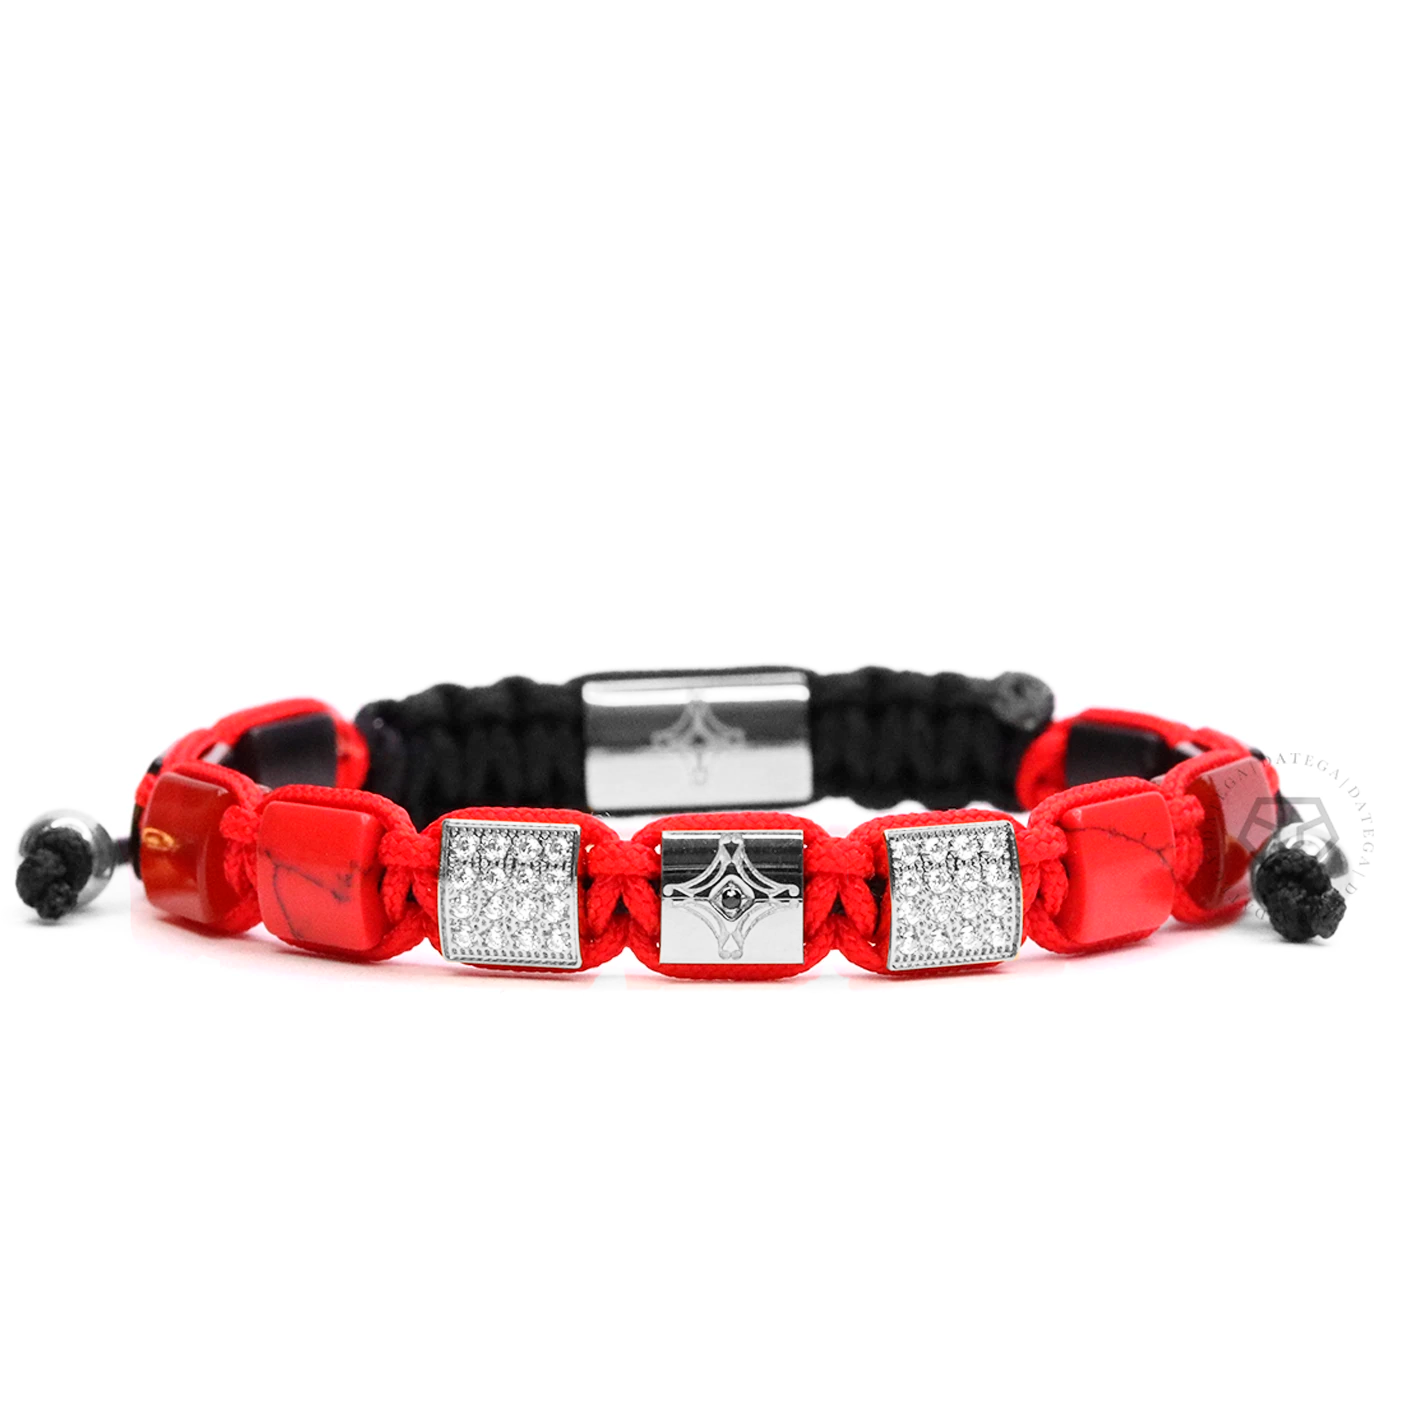 Rossu Top Star Bracelet